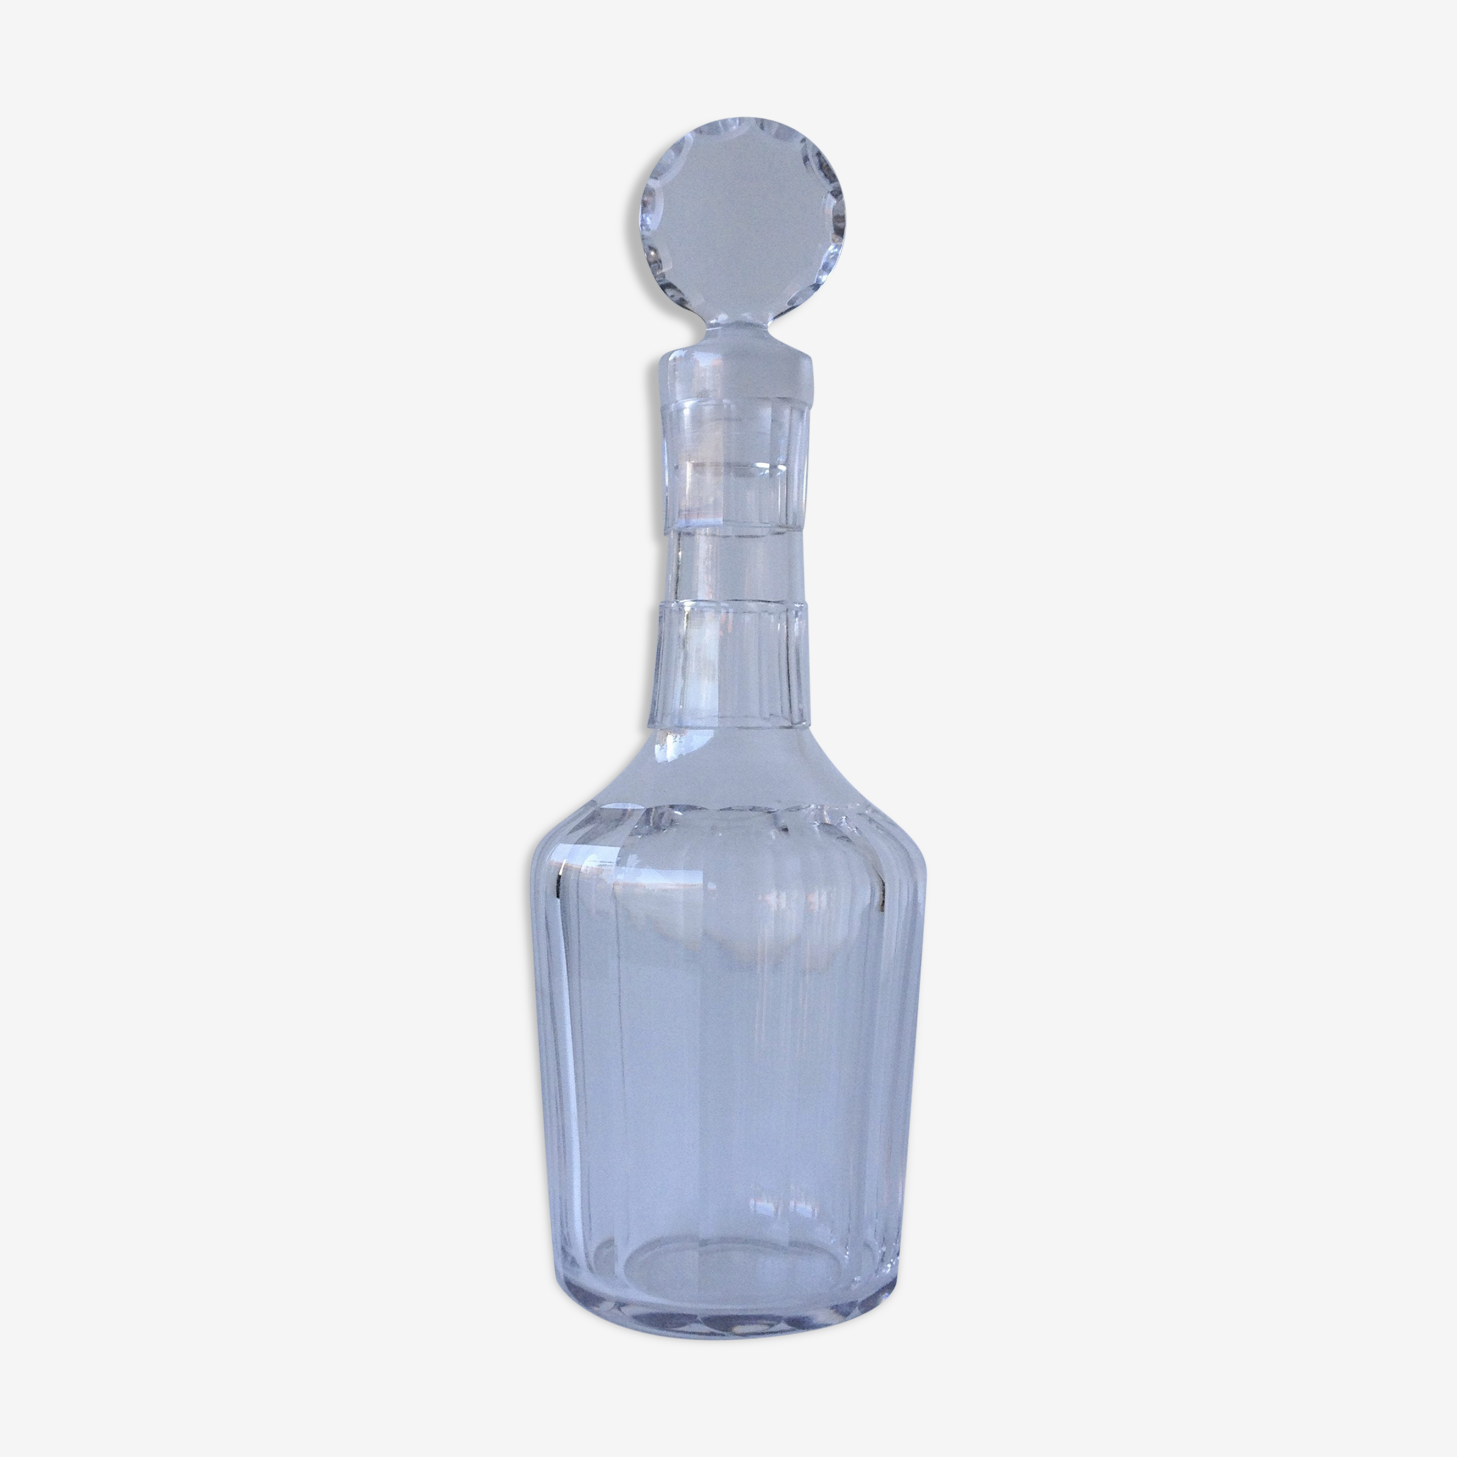 Perfumer bottle with crystal stopper